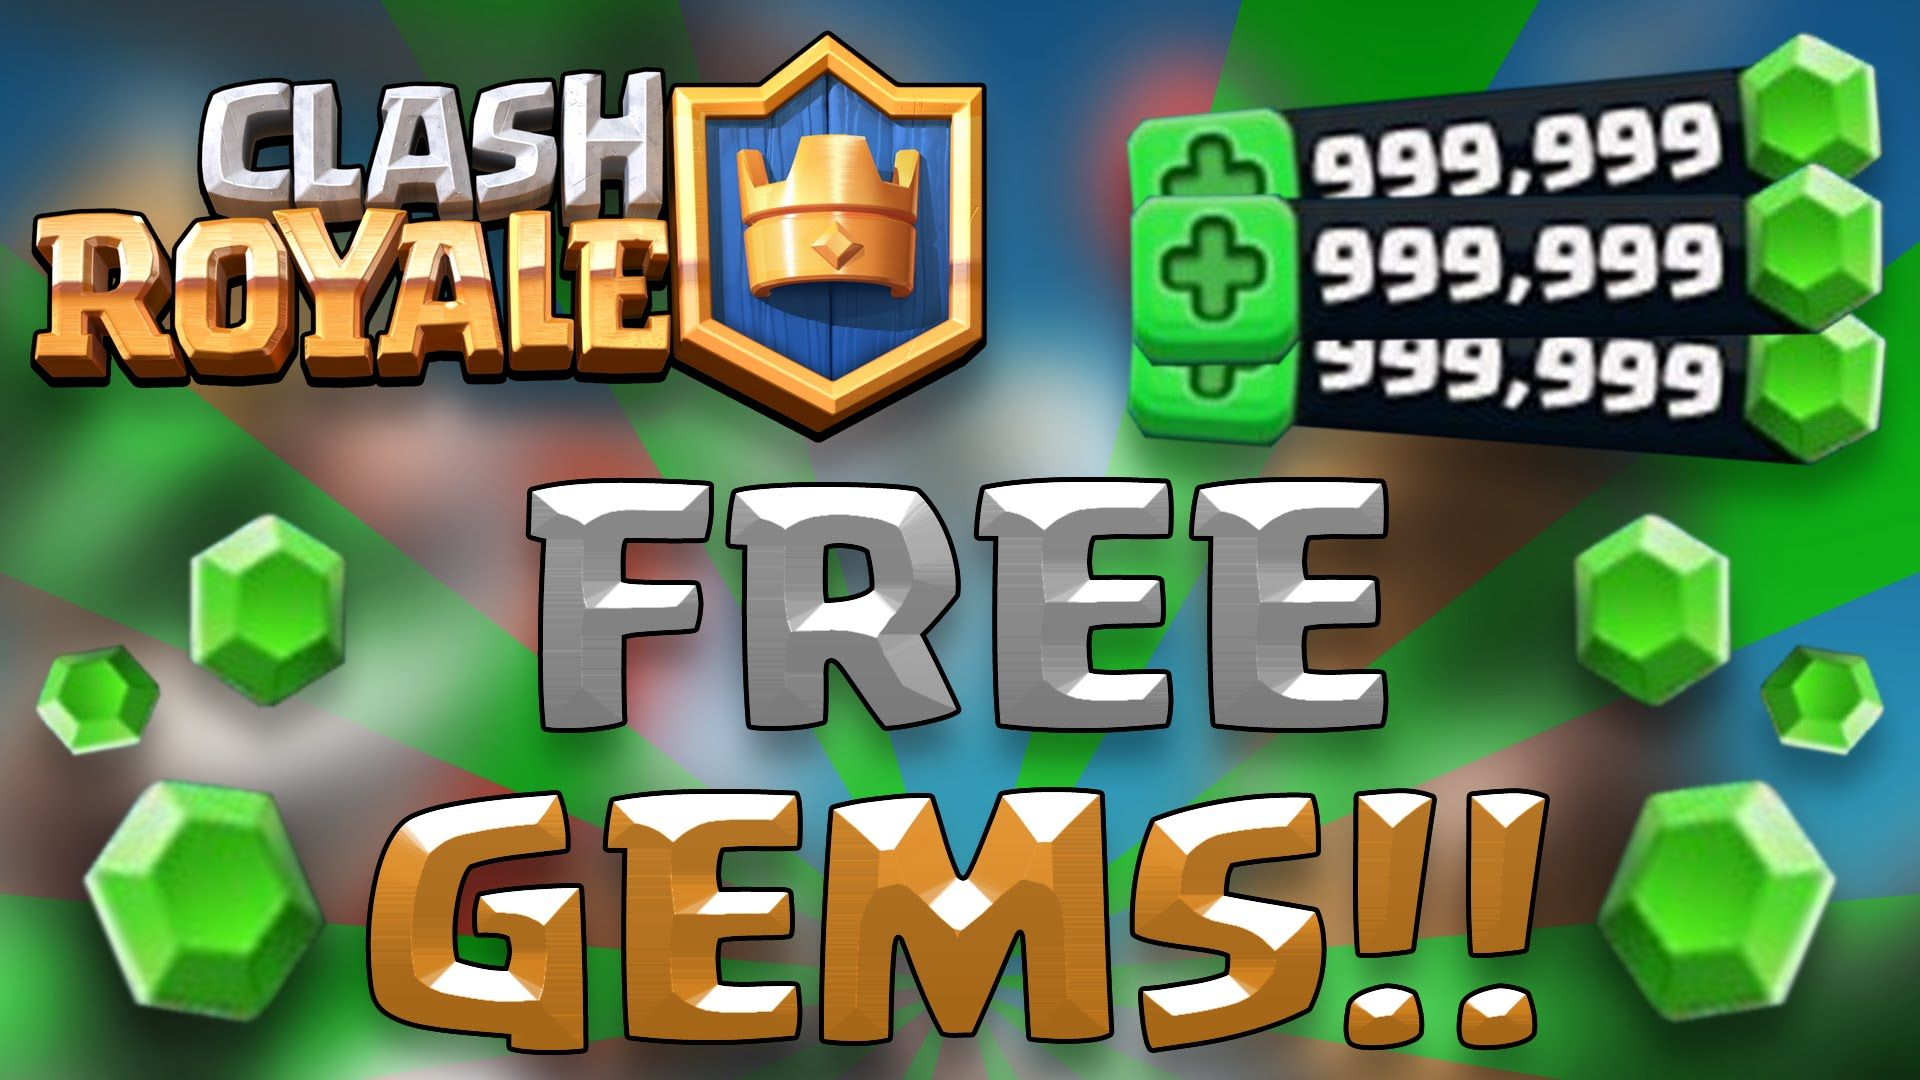 Claim Clash Royale Unlimited Gems For Free! Working [December 2020]